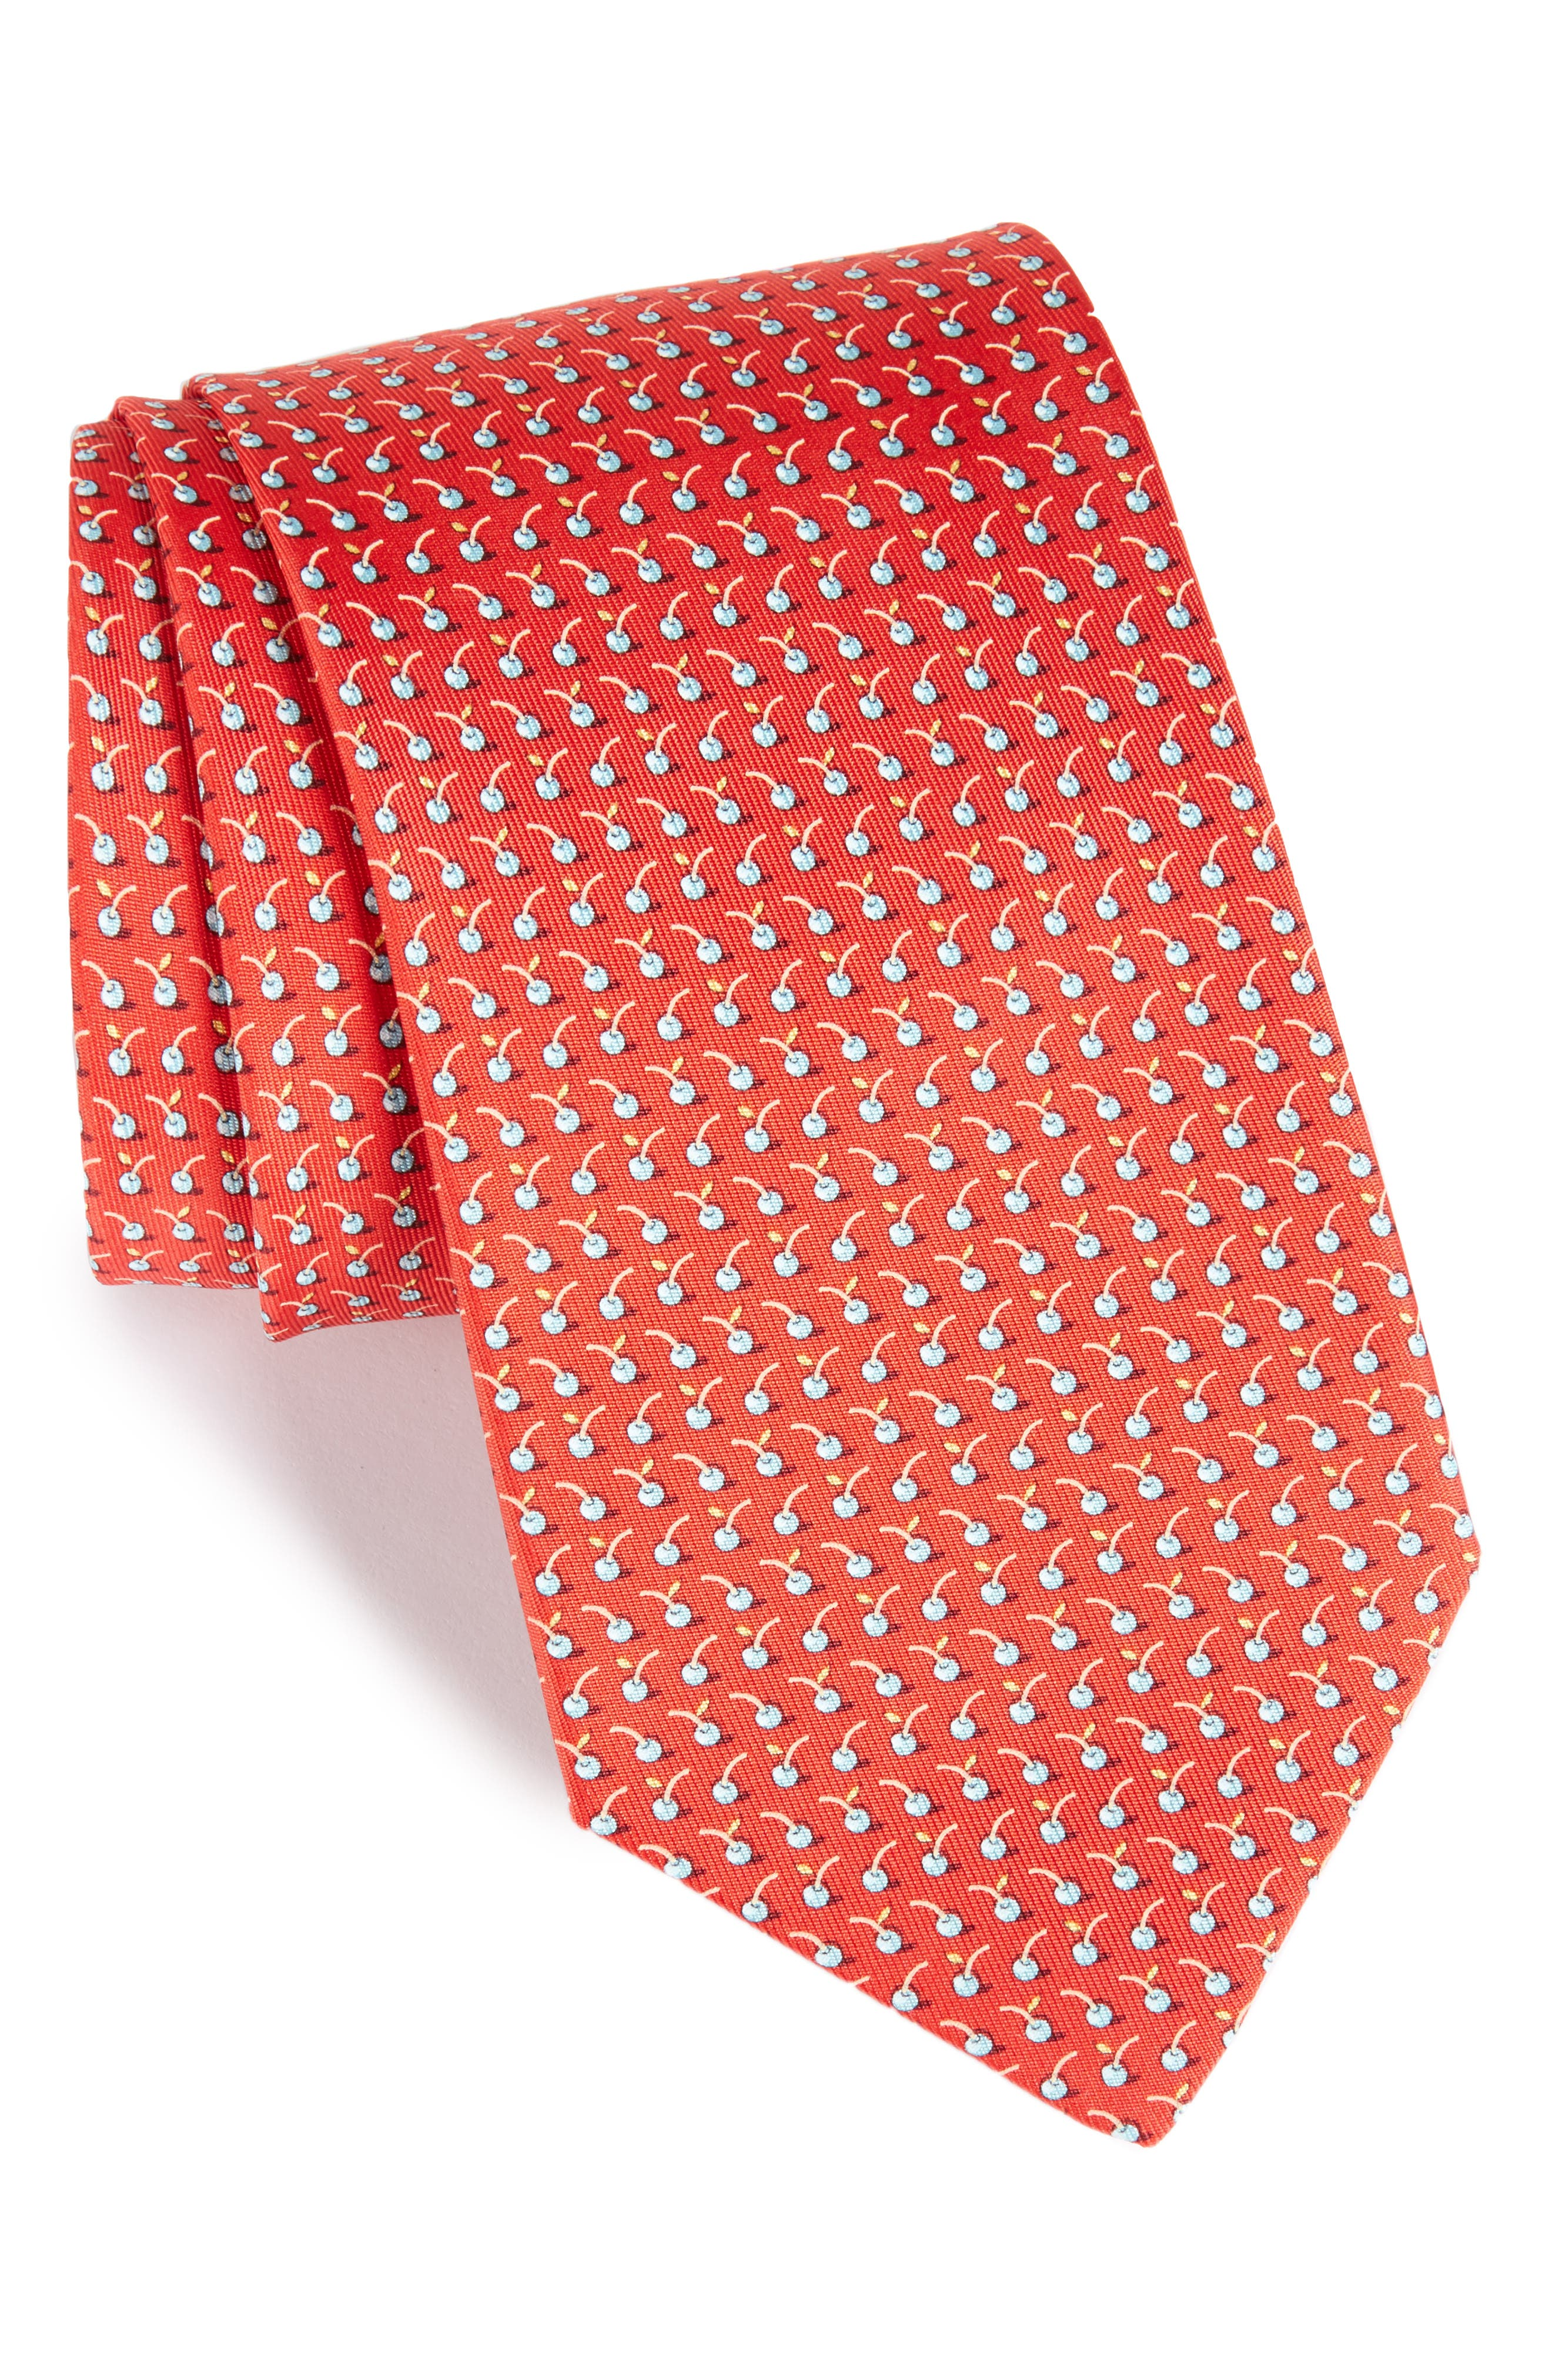 Alternate Image 1 Selected - Salvatore Ferragamo Fruit Silk Tie